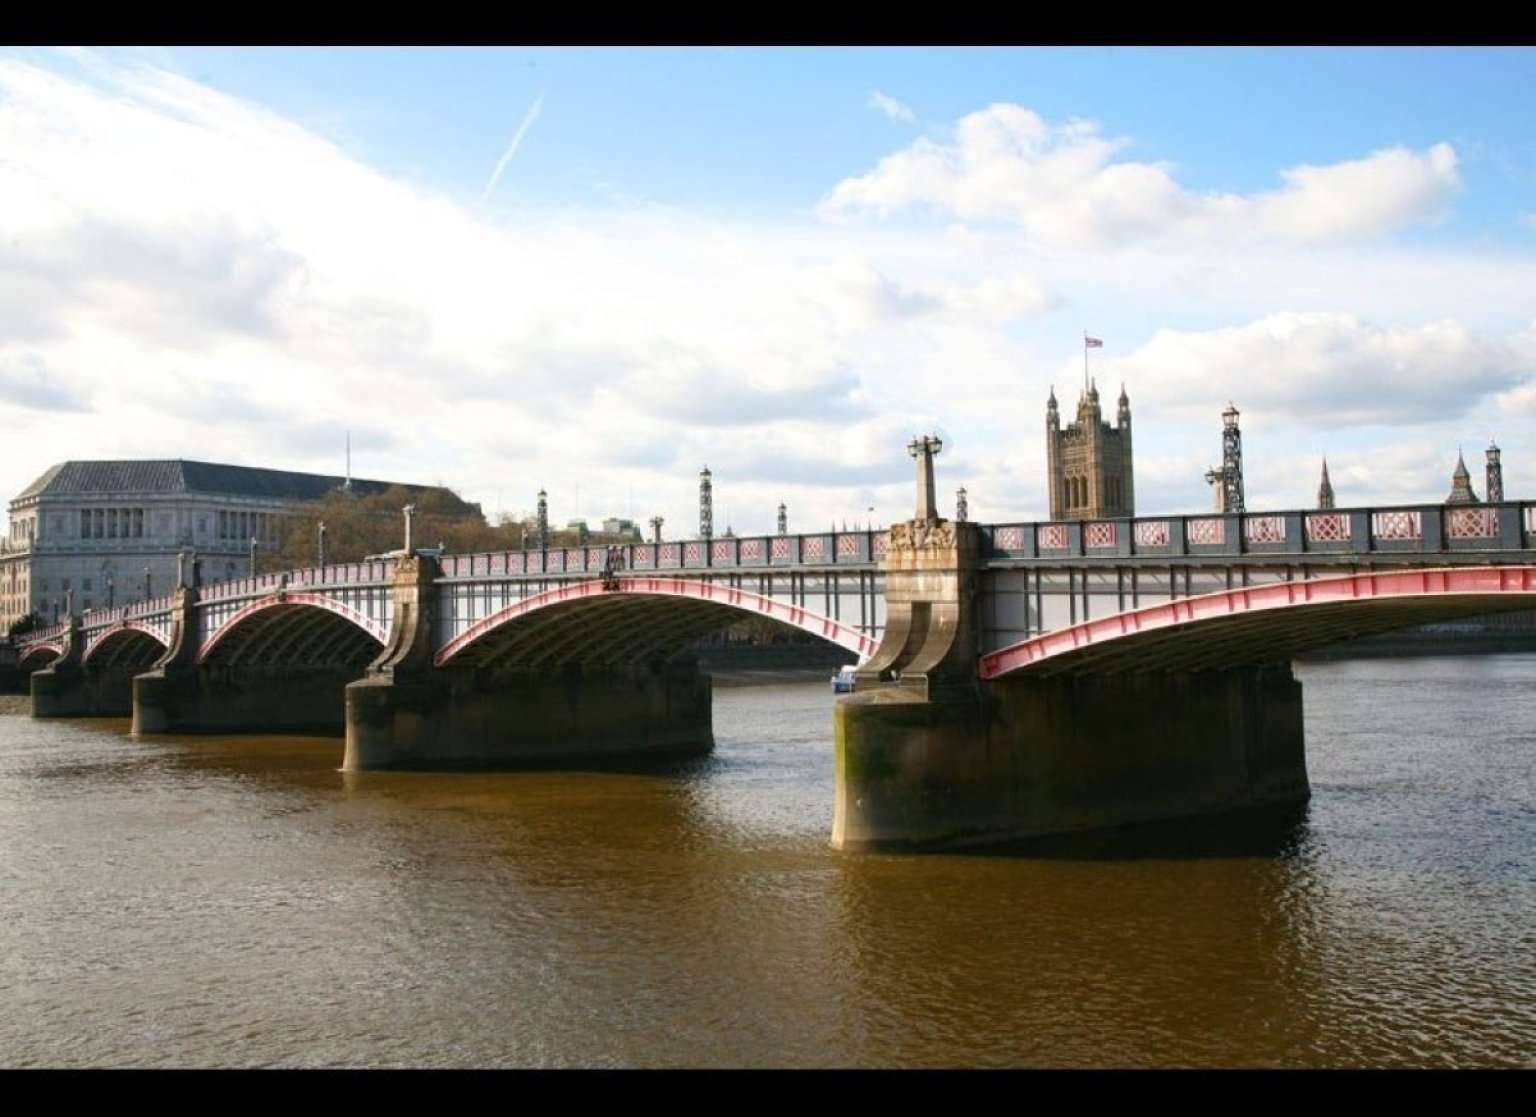 London 39 s most famous bridges huffpost for Design agency london bridge